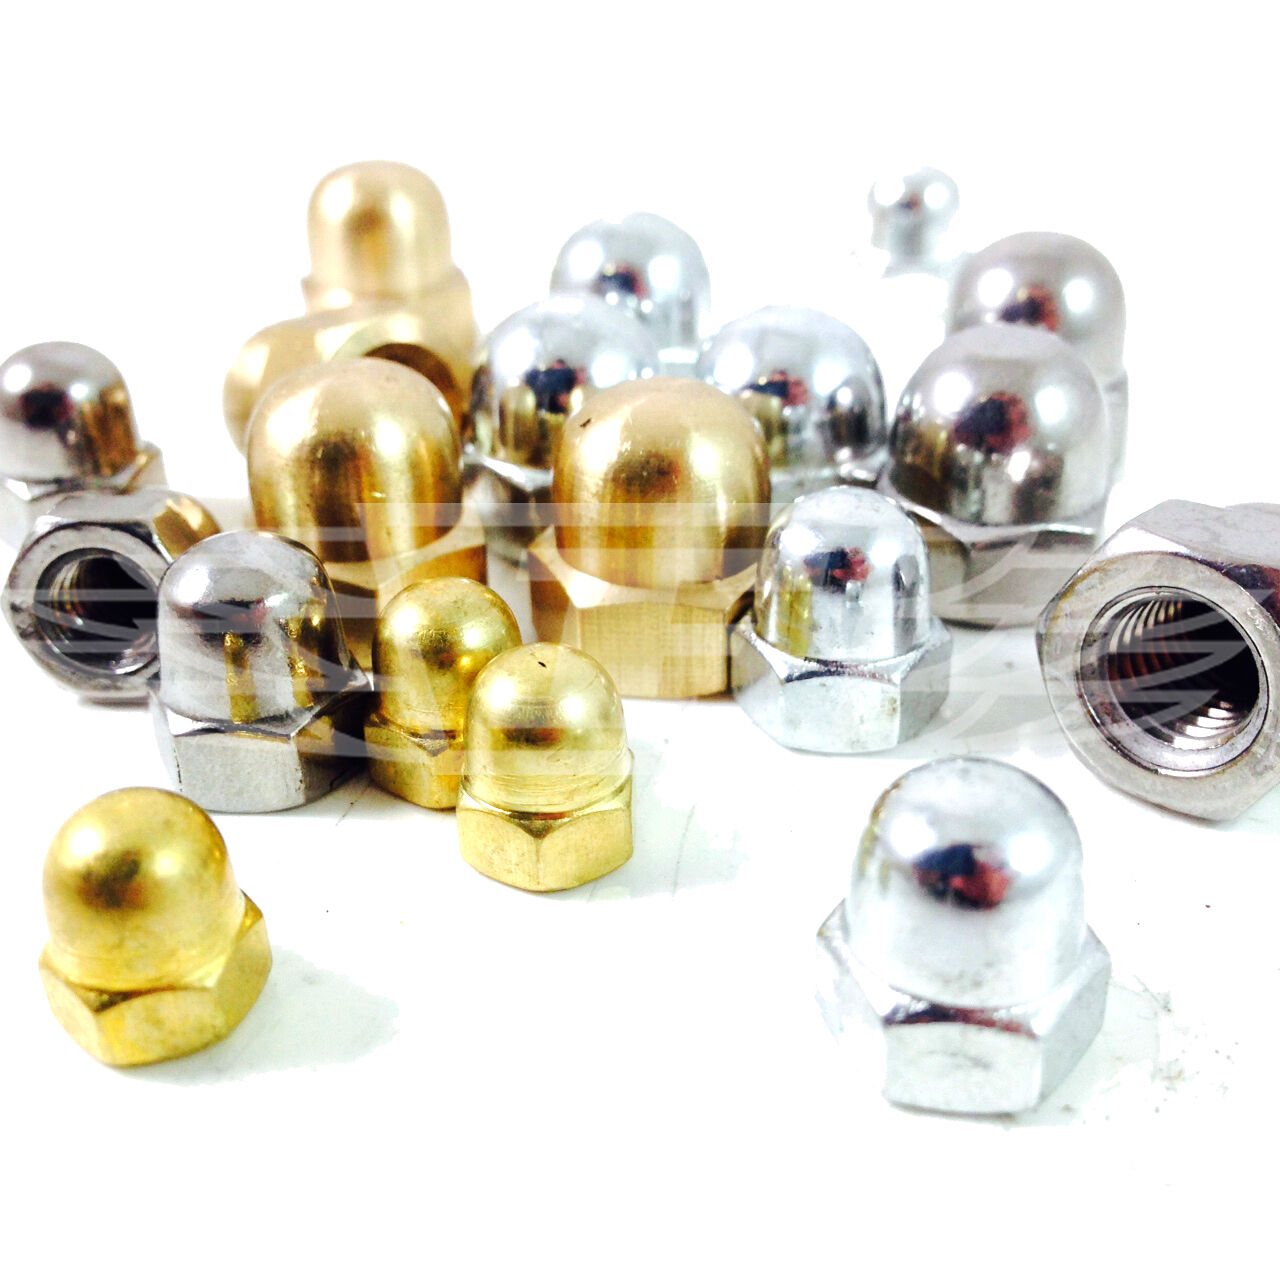 M3 STAINLESS STEEL A2 DOME NUTS QTY = 25